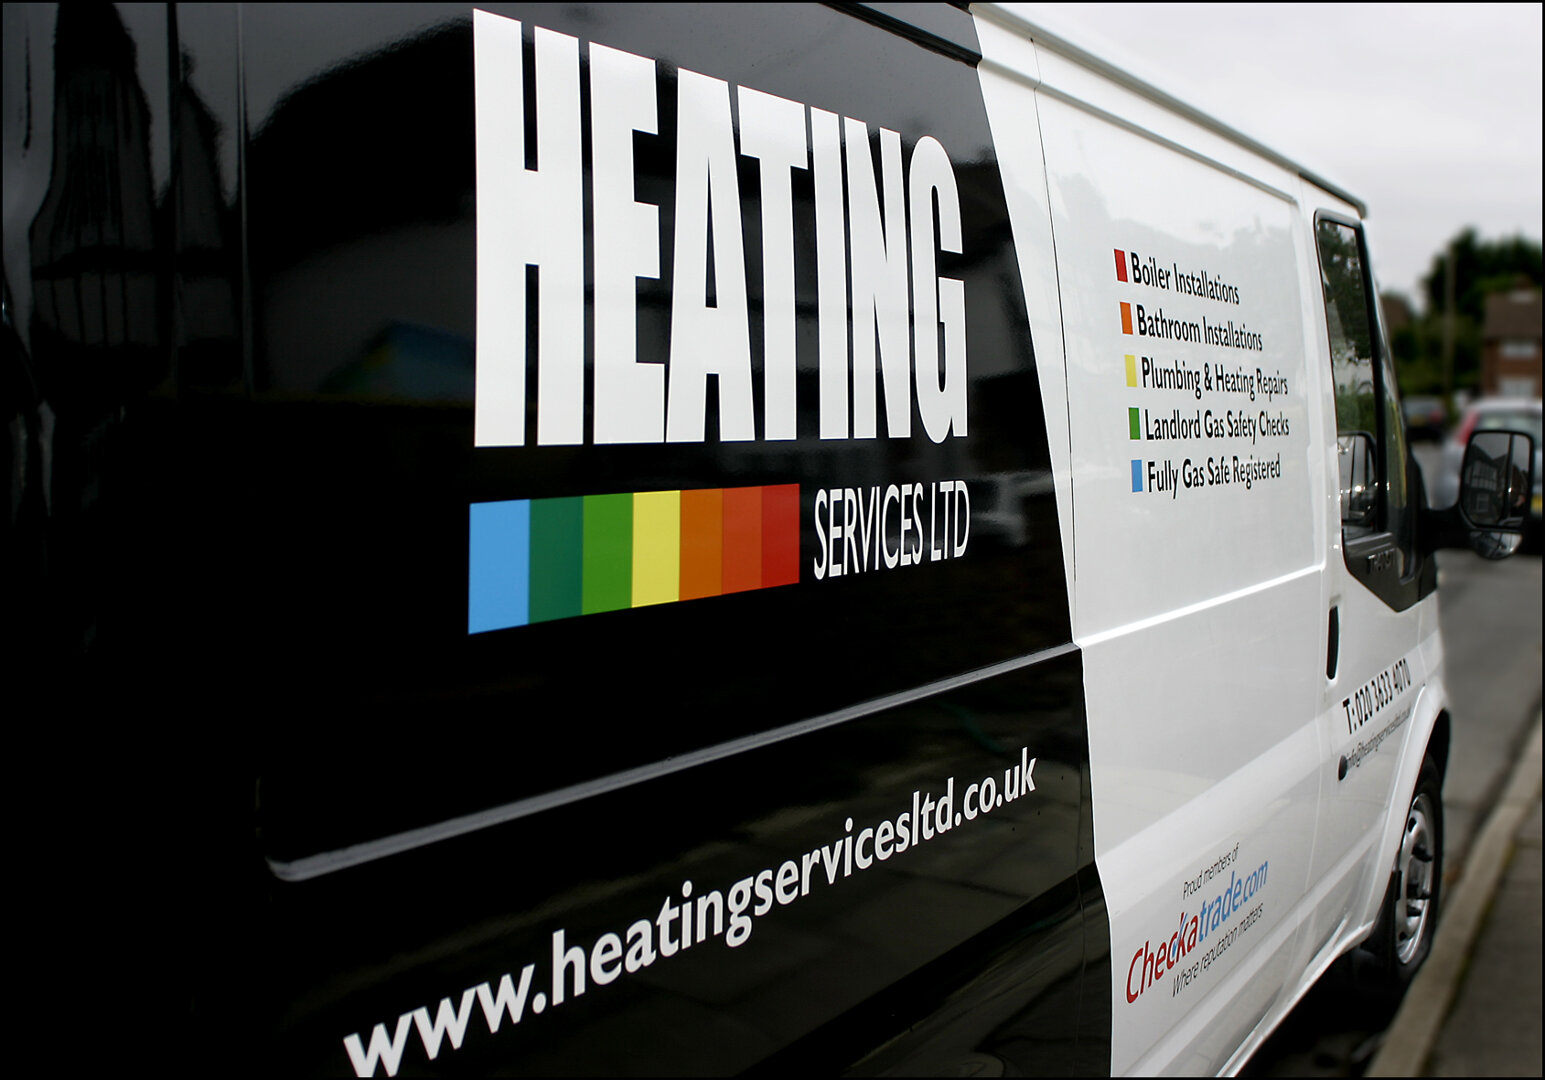 Plumbers Boiler Installation Service and Repairs and Bathroom Design and Installation by Heating Services Ltd in Biggin Hill (2)